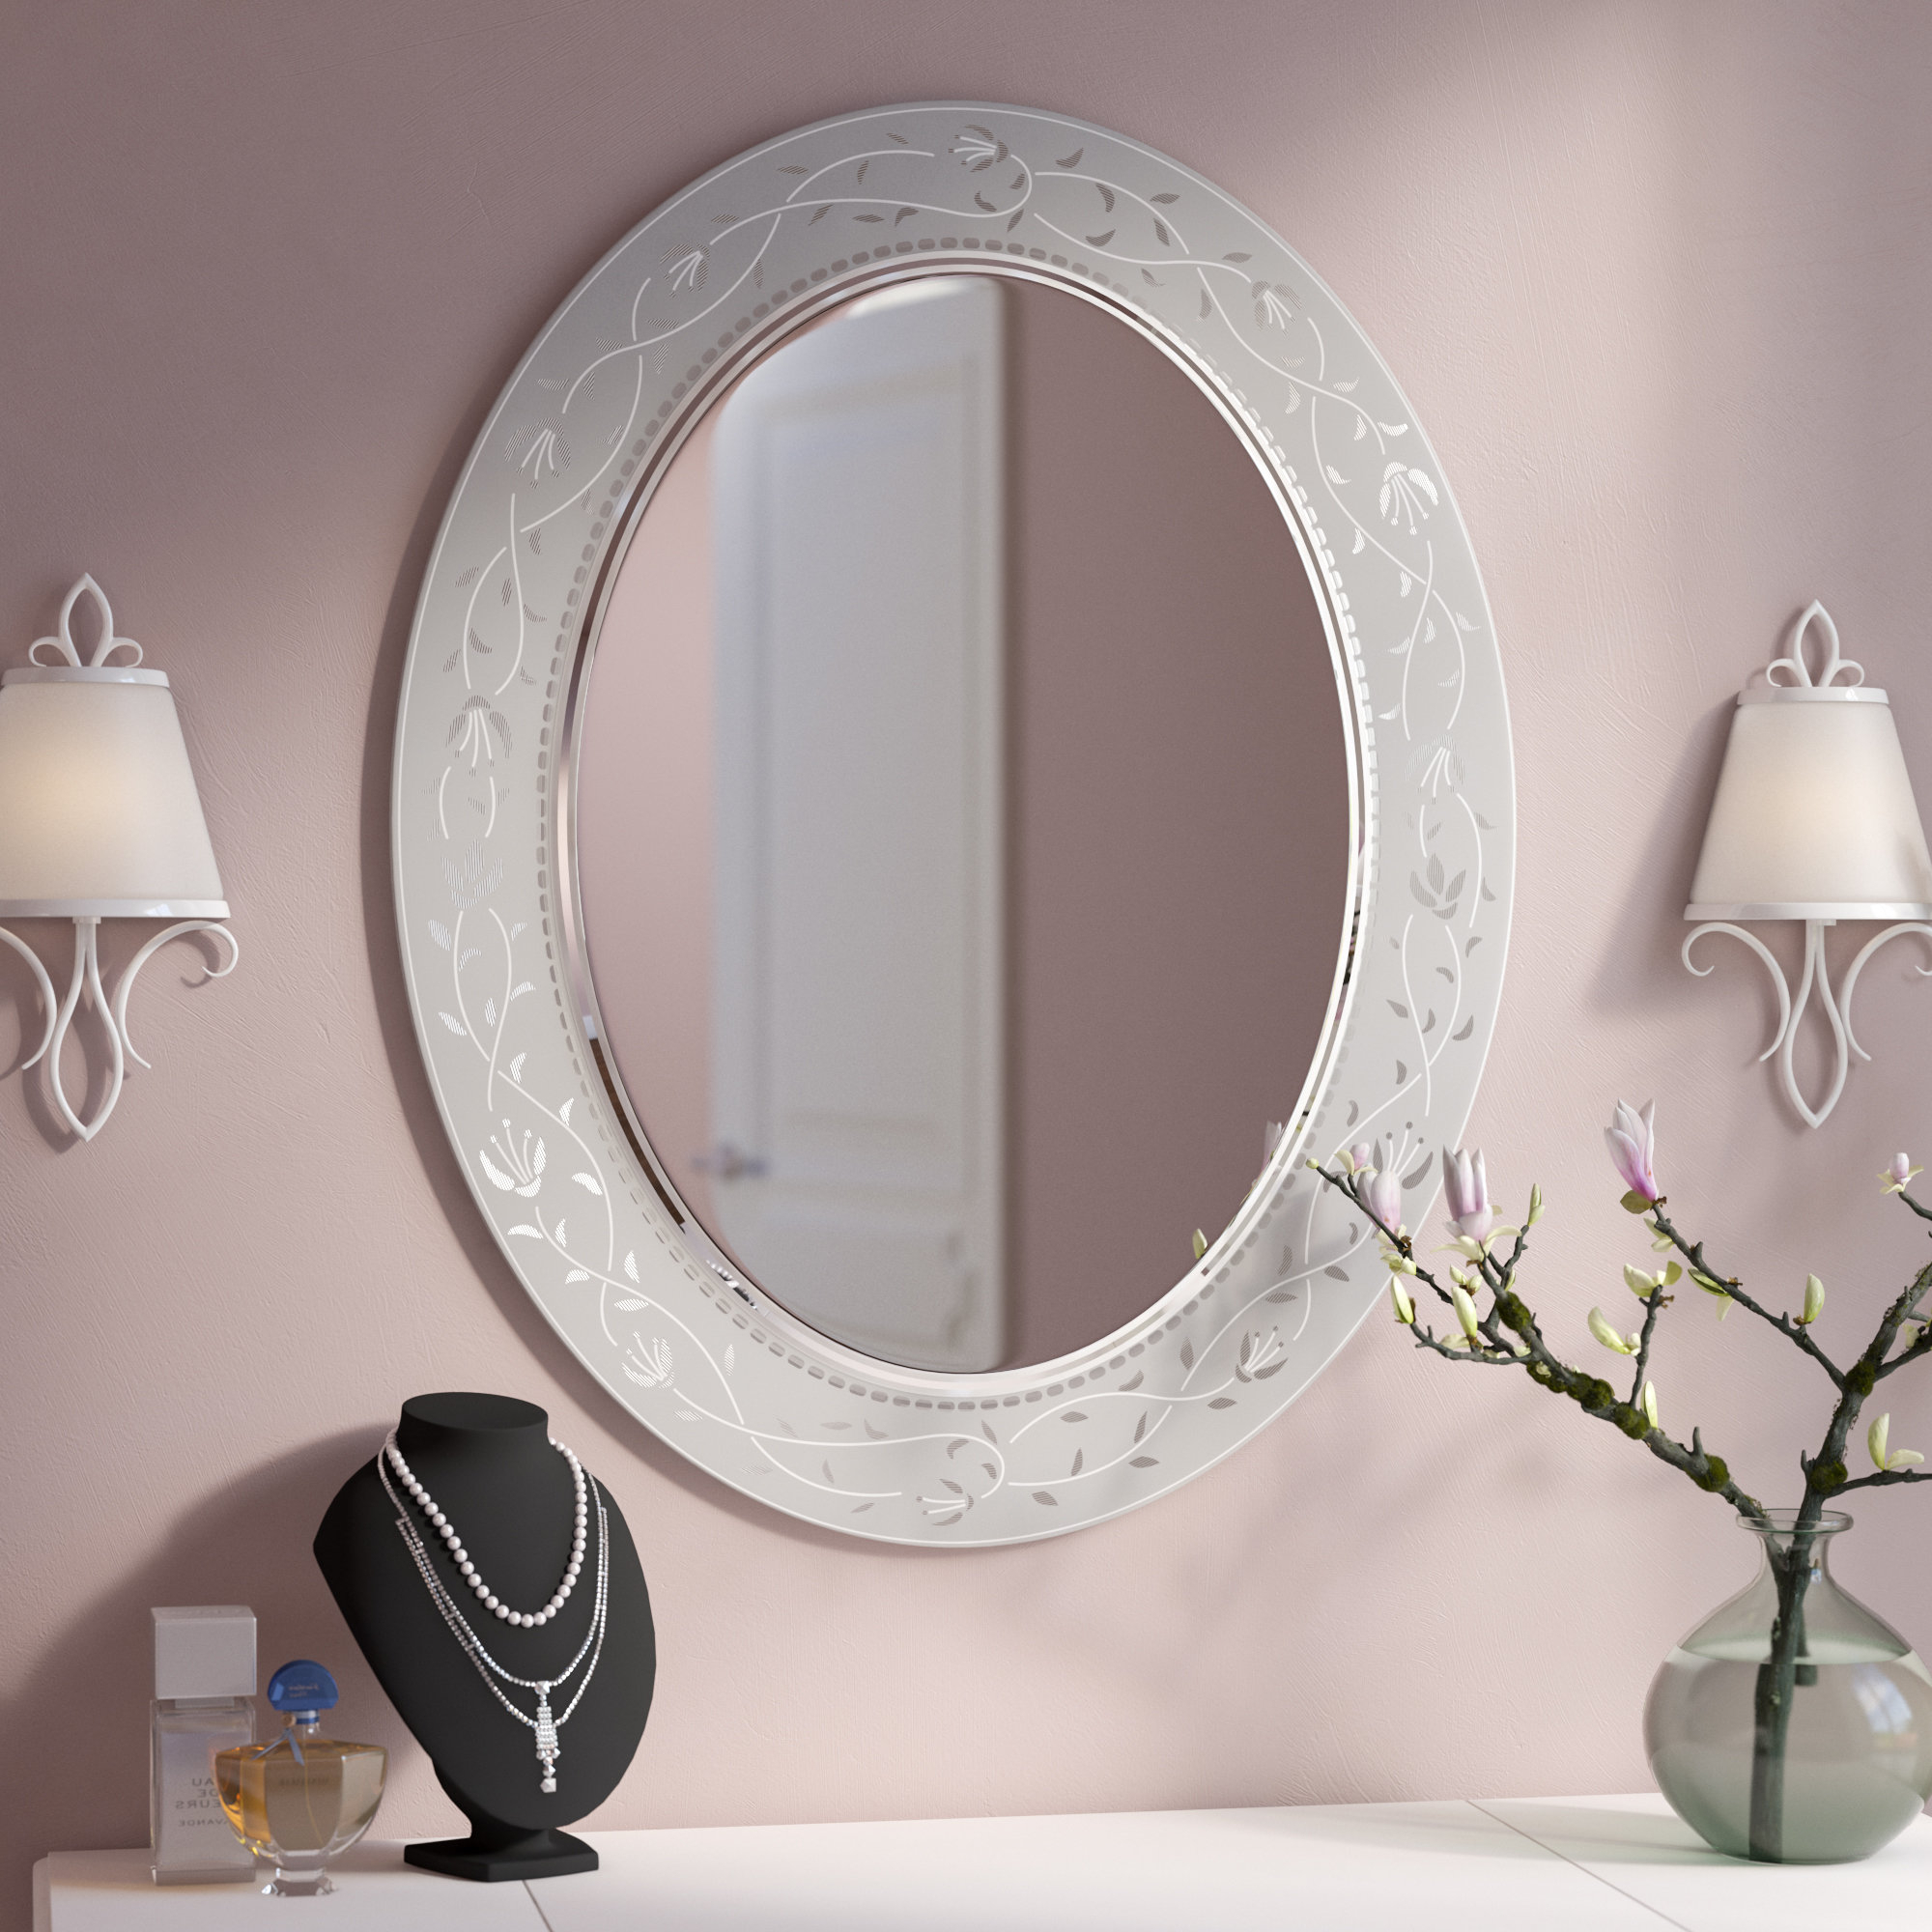 Latest Morandiere Etched Border Bathroom/vanity Mirror Pertaining To Etched Wall Mirrors (View 20 of 20)